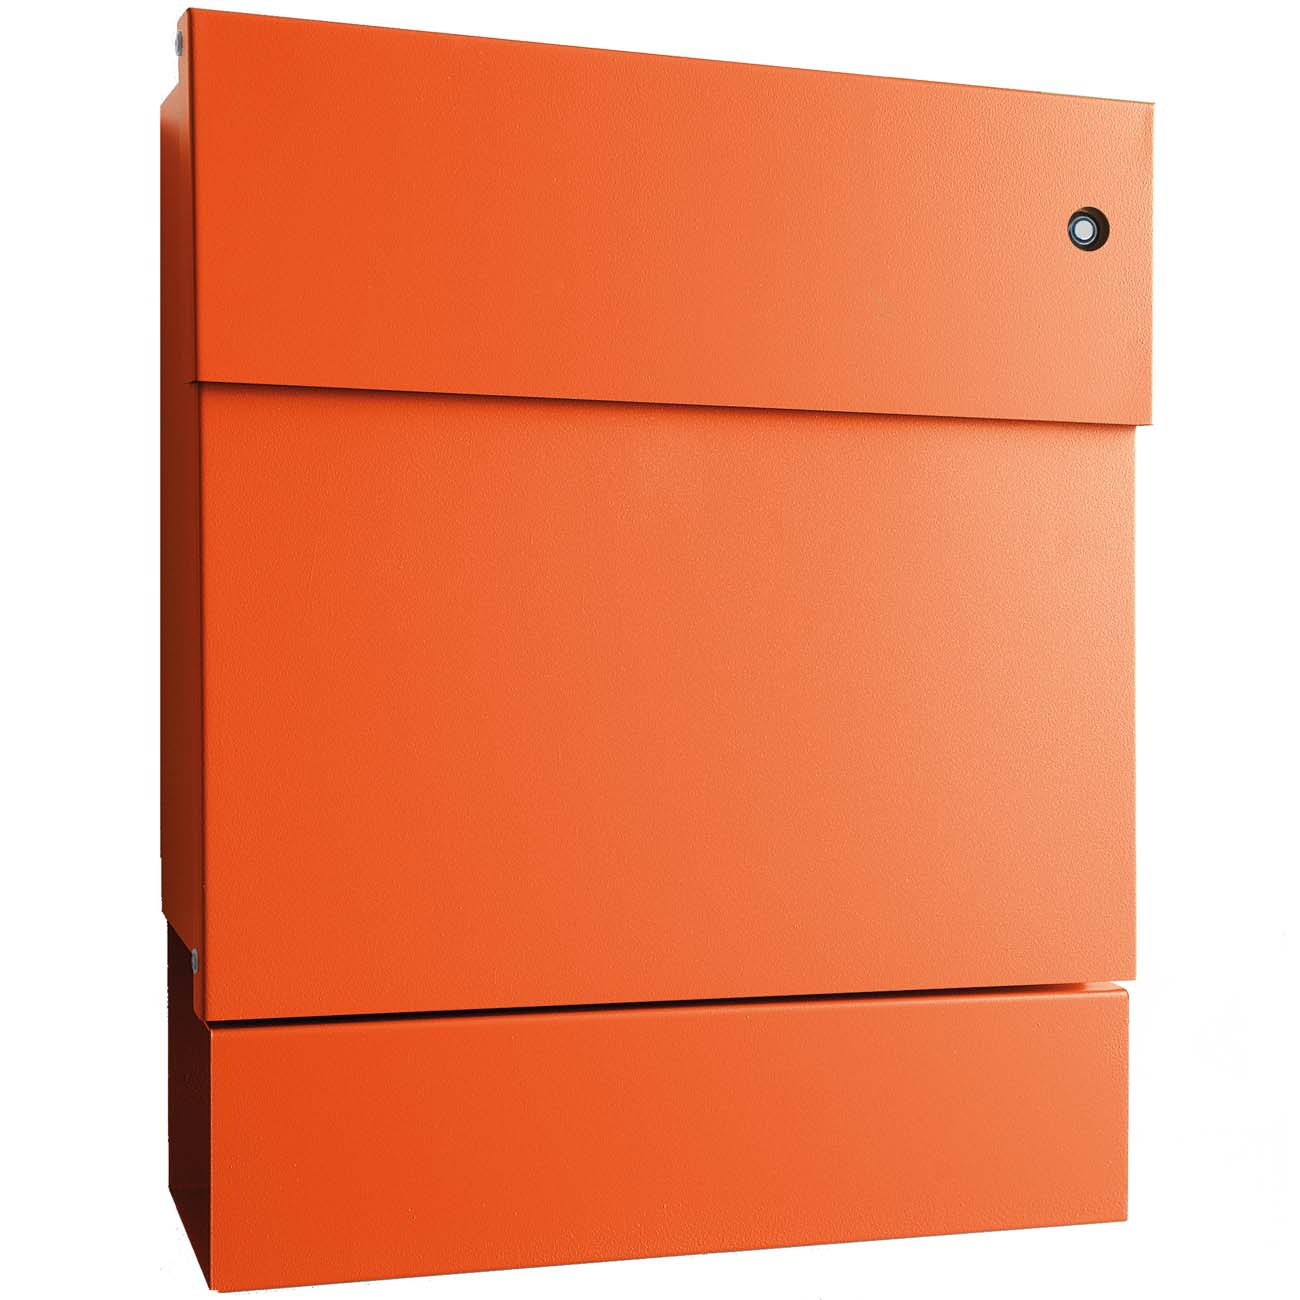 briefkasten letterman 5 orange radius design mit klingel blau und zeitungsrolle ebay. Black Bedroom Furniture Sets. Home Design Ideas